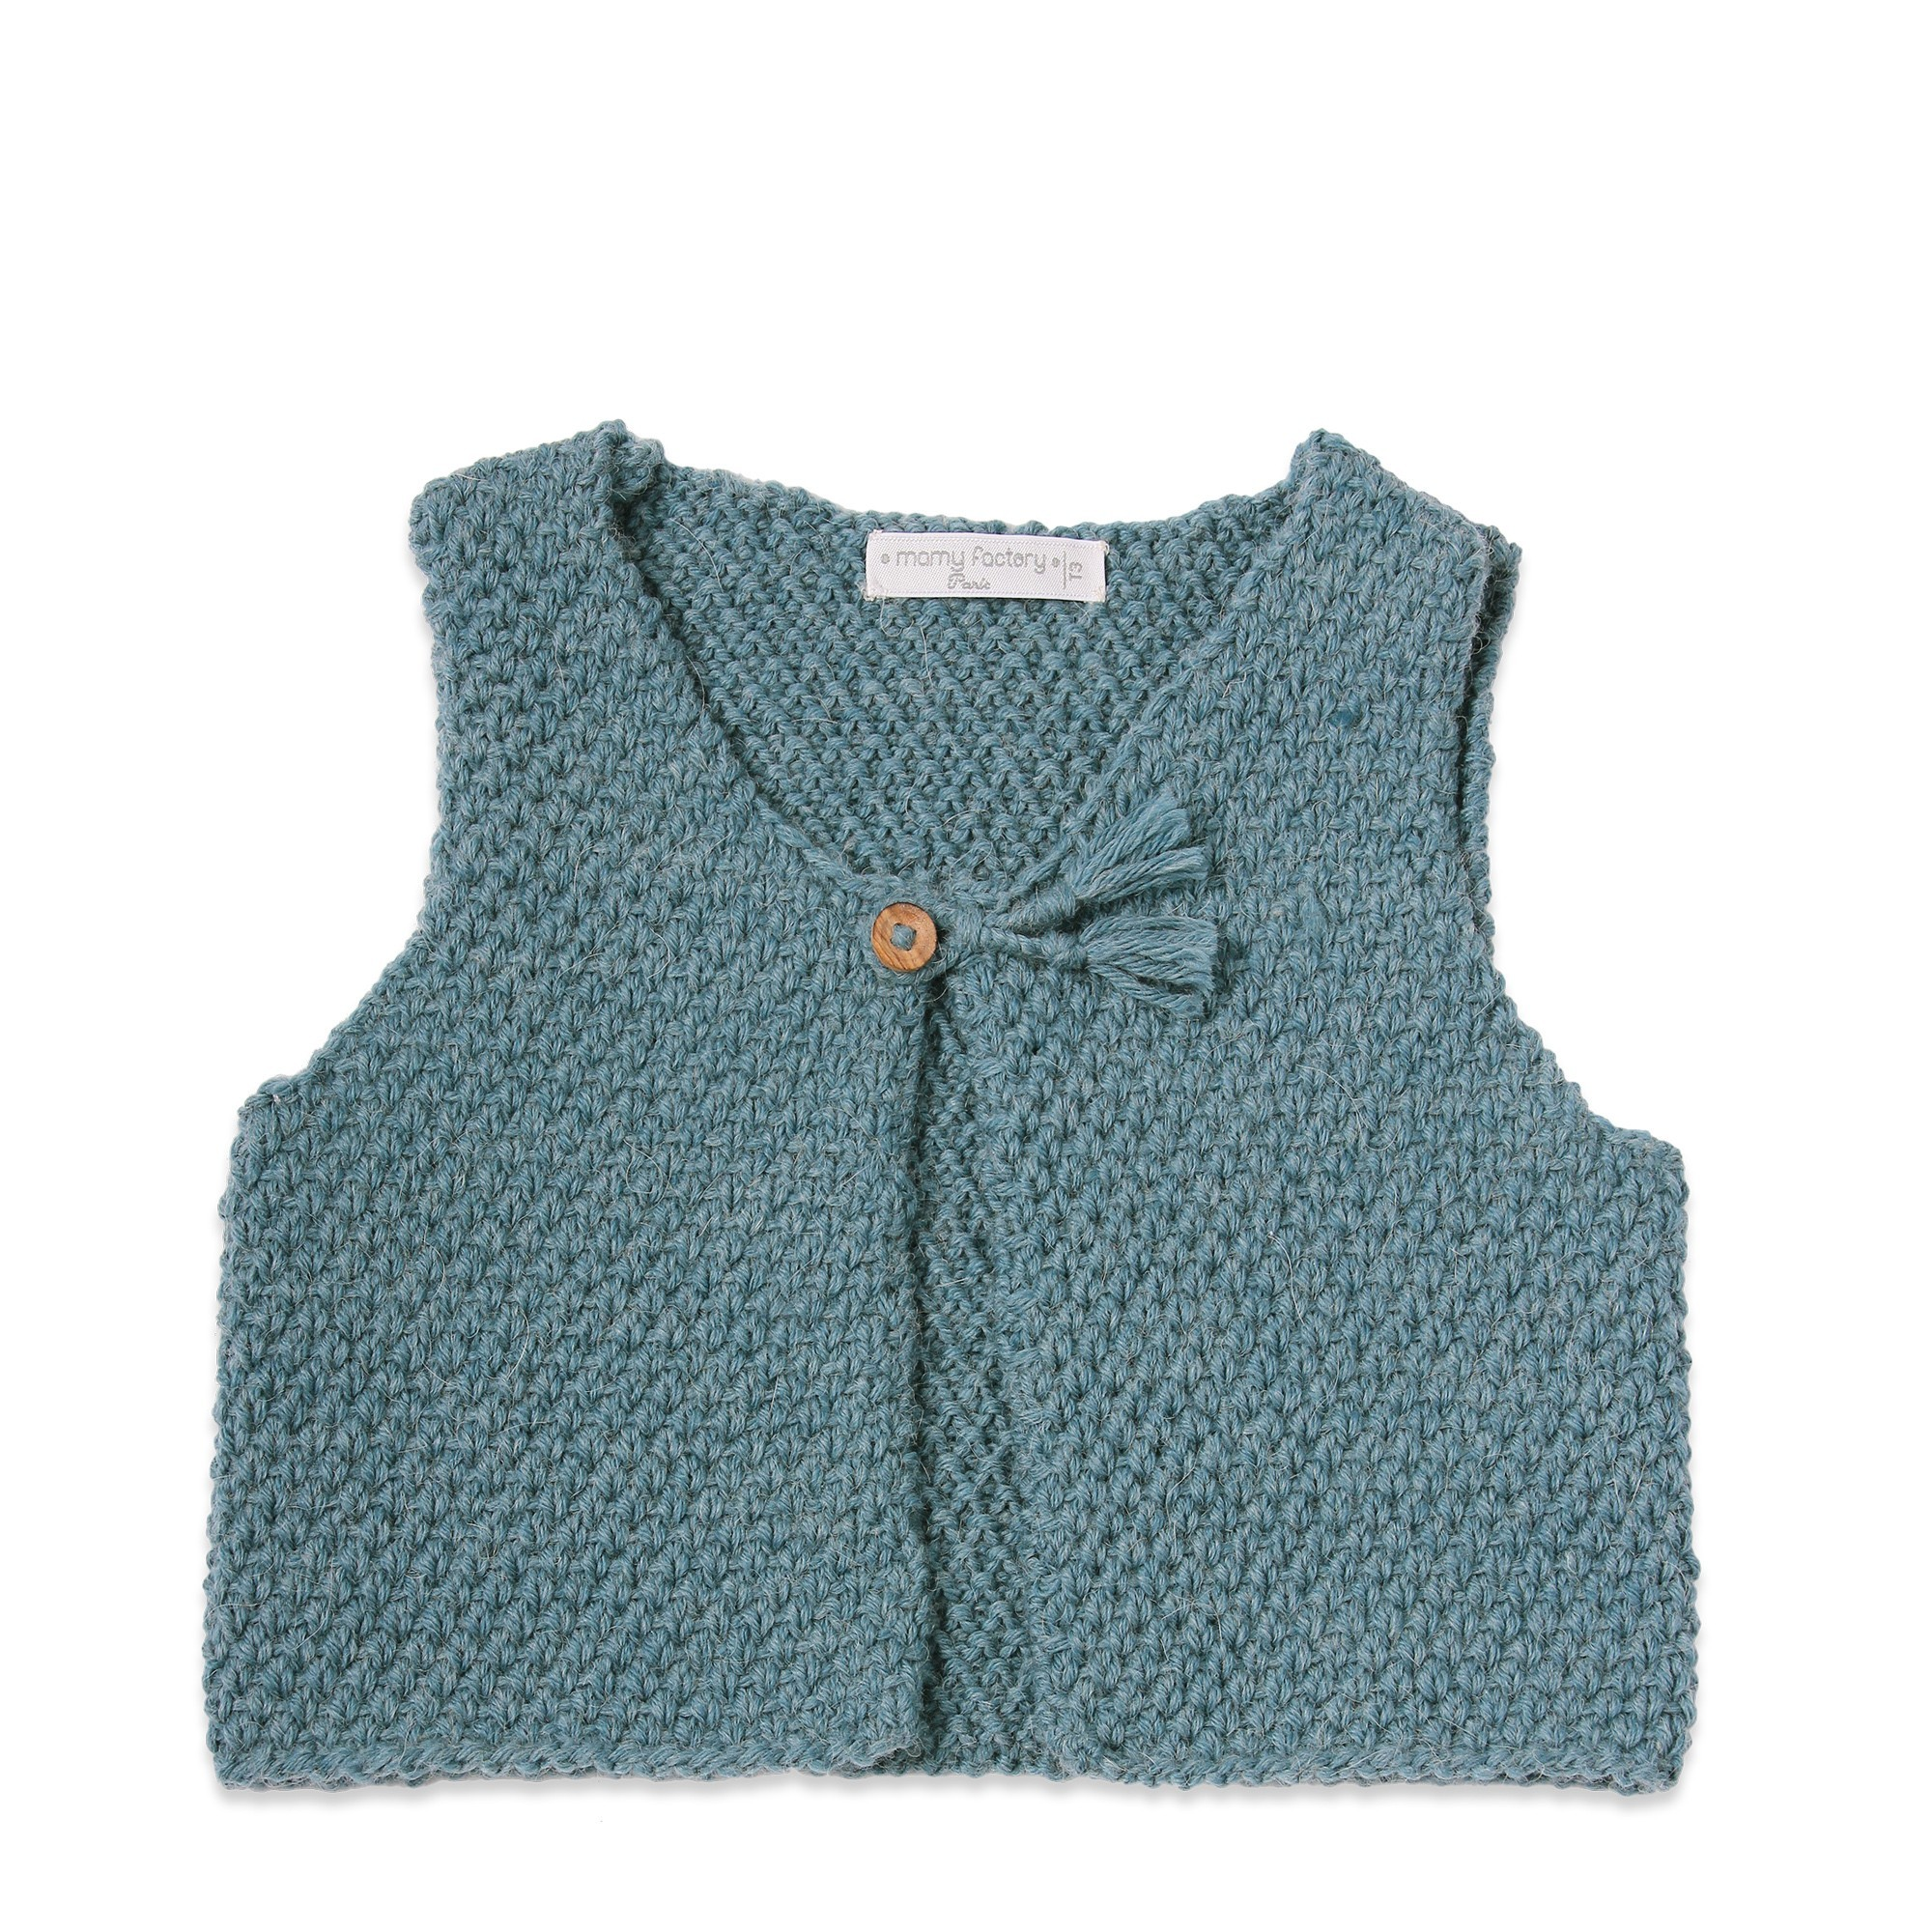 Petrol blue baby sheperd vest made from wool and alpaca with wood buttons